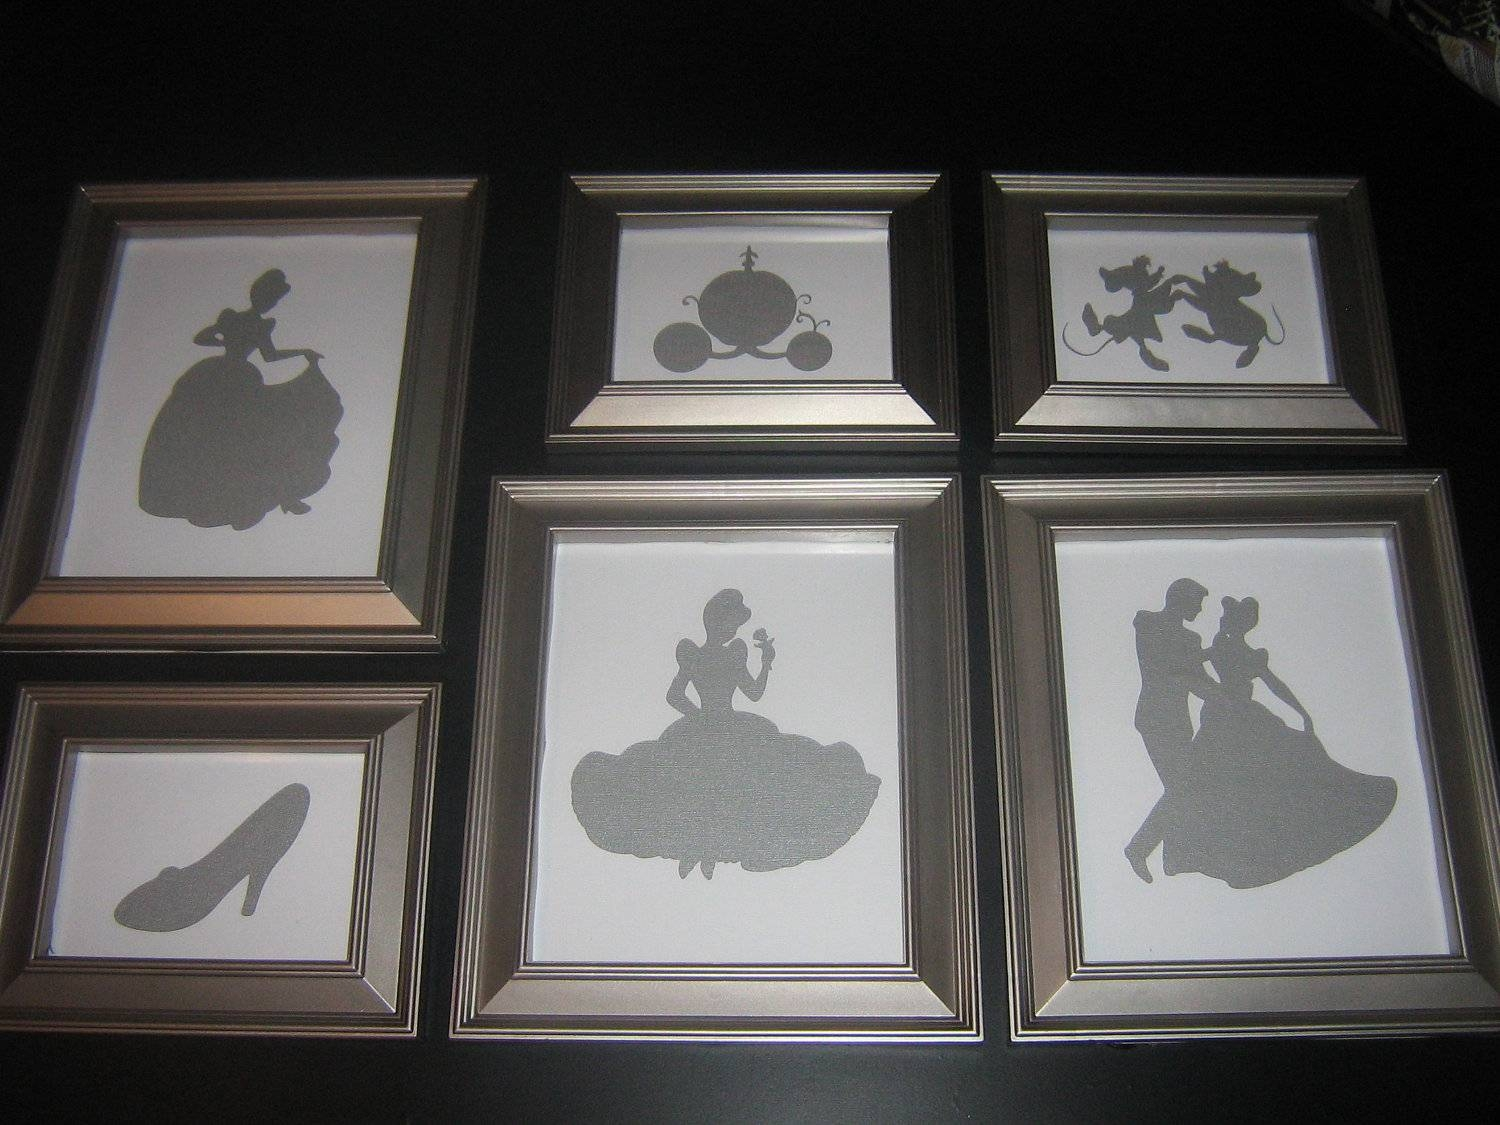 Disney Framed Pictures Images – Craft Decoration Ideas With Regard To Best And Newest Disney Princess Framed Wall Art (View 8 of 20)